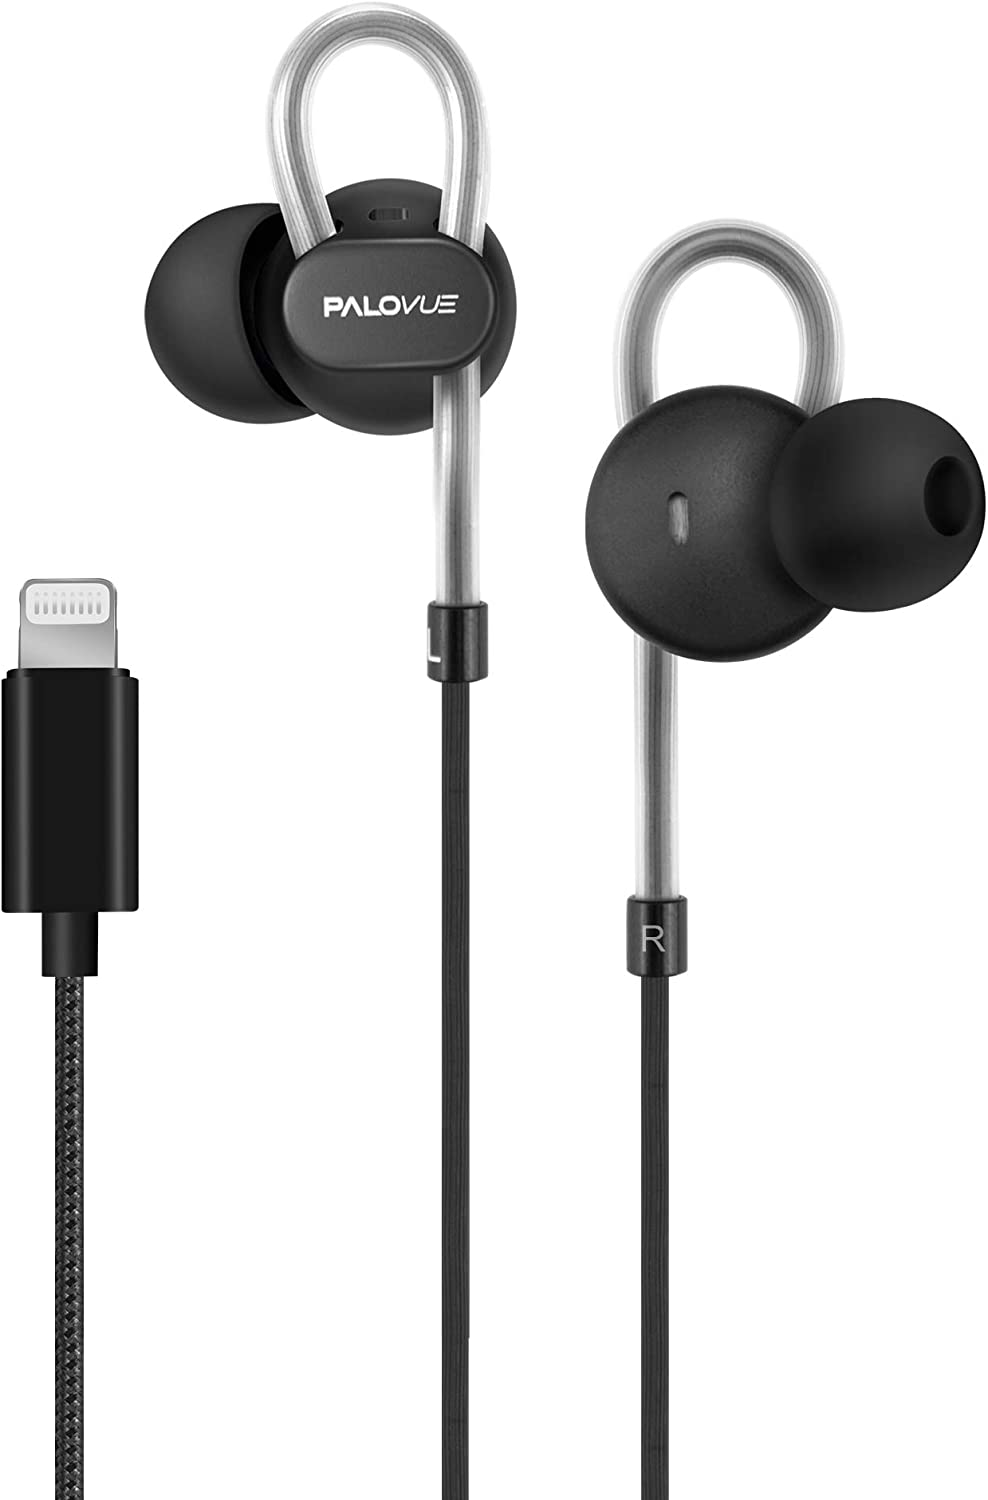 PALOVUE Lightning Headphones Earbuds Earphones with Microphone Controller MFi Certified Noise Isolation Compatible iPhone 12 11 Pro Max iPhone X/XS Max/XR iPhone 8/P iPhone 7/P NeoFlowColor (Black)